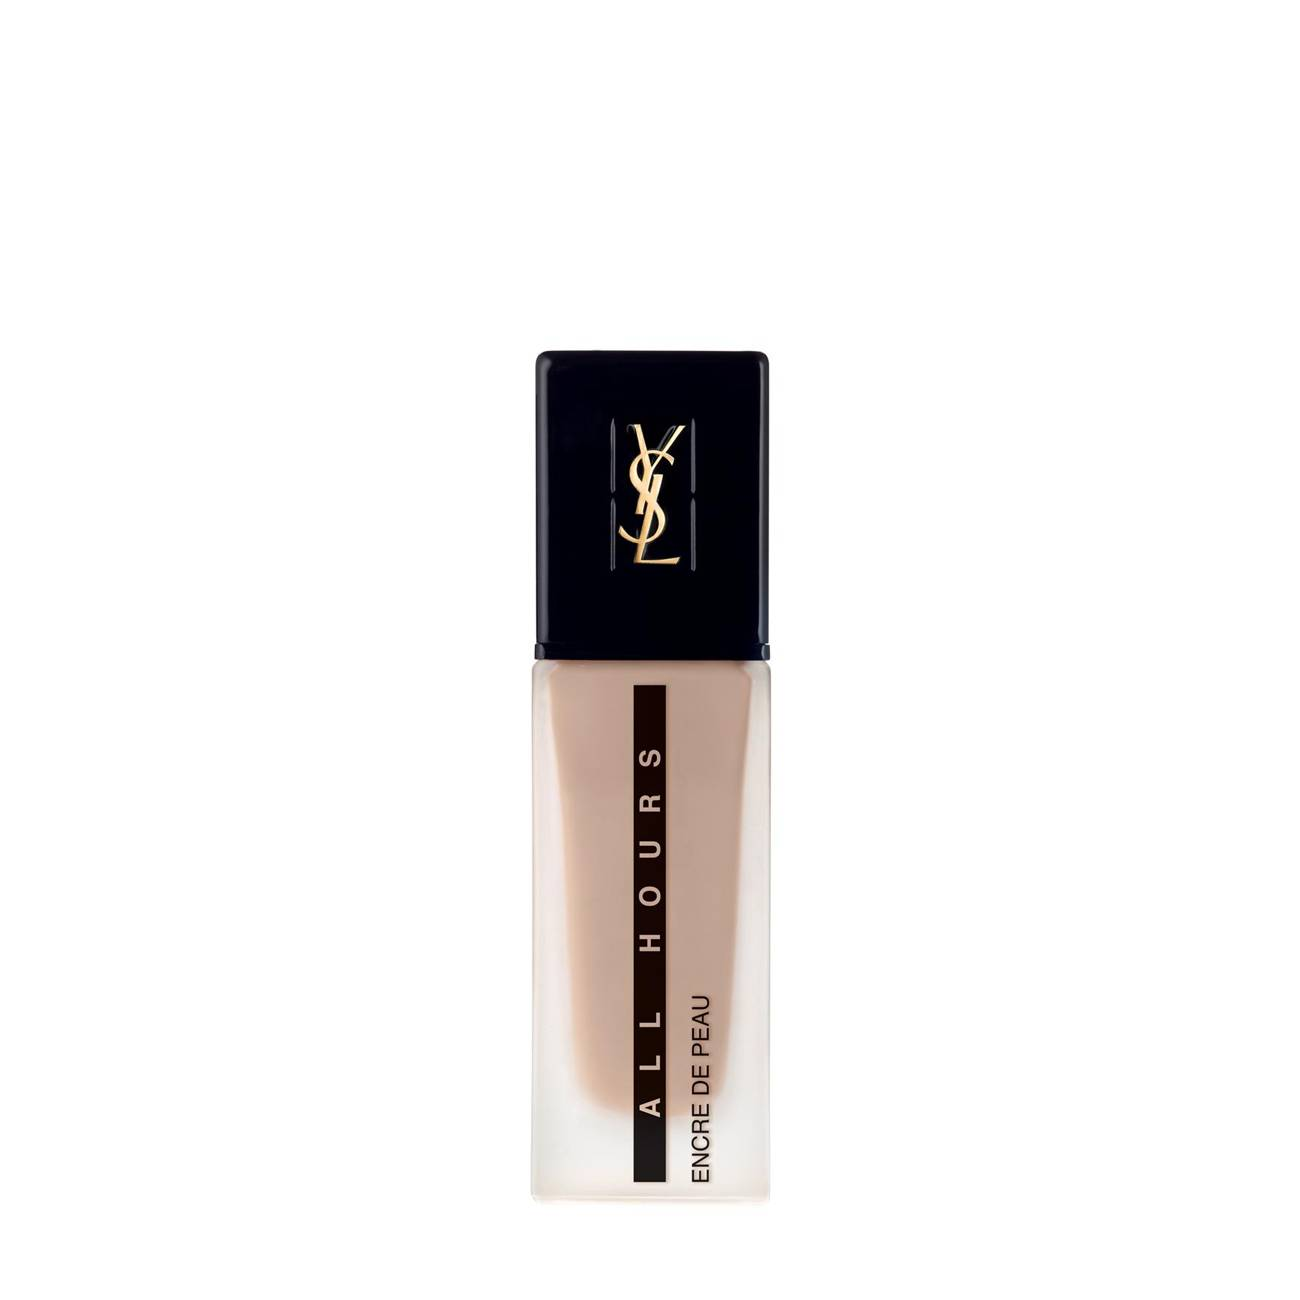 Encre De Peau All Hours B10 25ml Yves Saint Laurent imagine 2021 bestvalue.eu